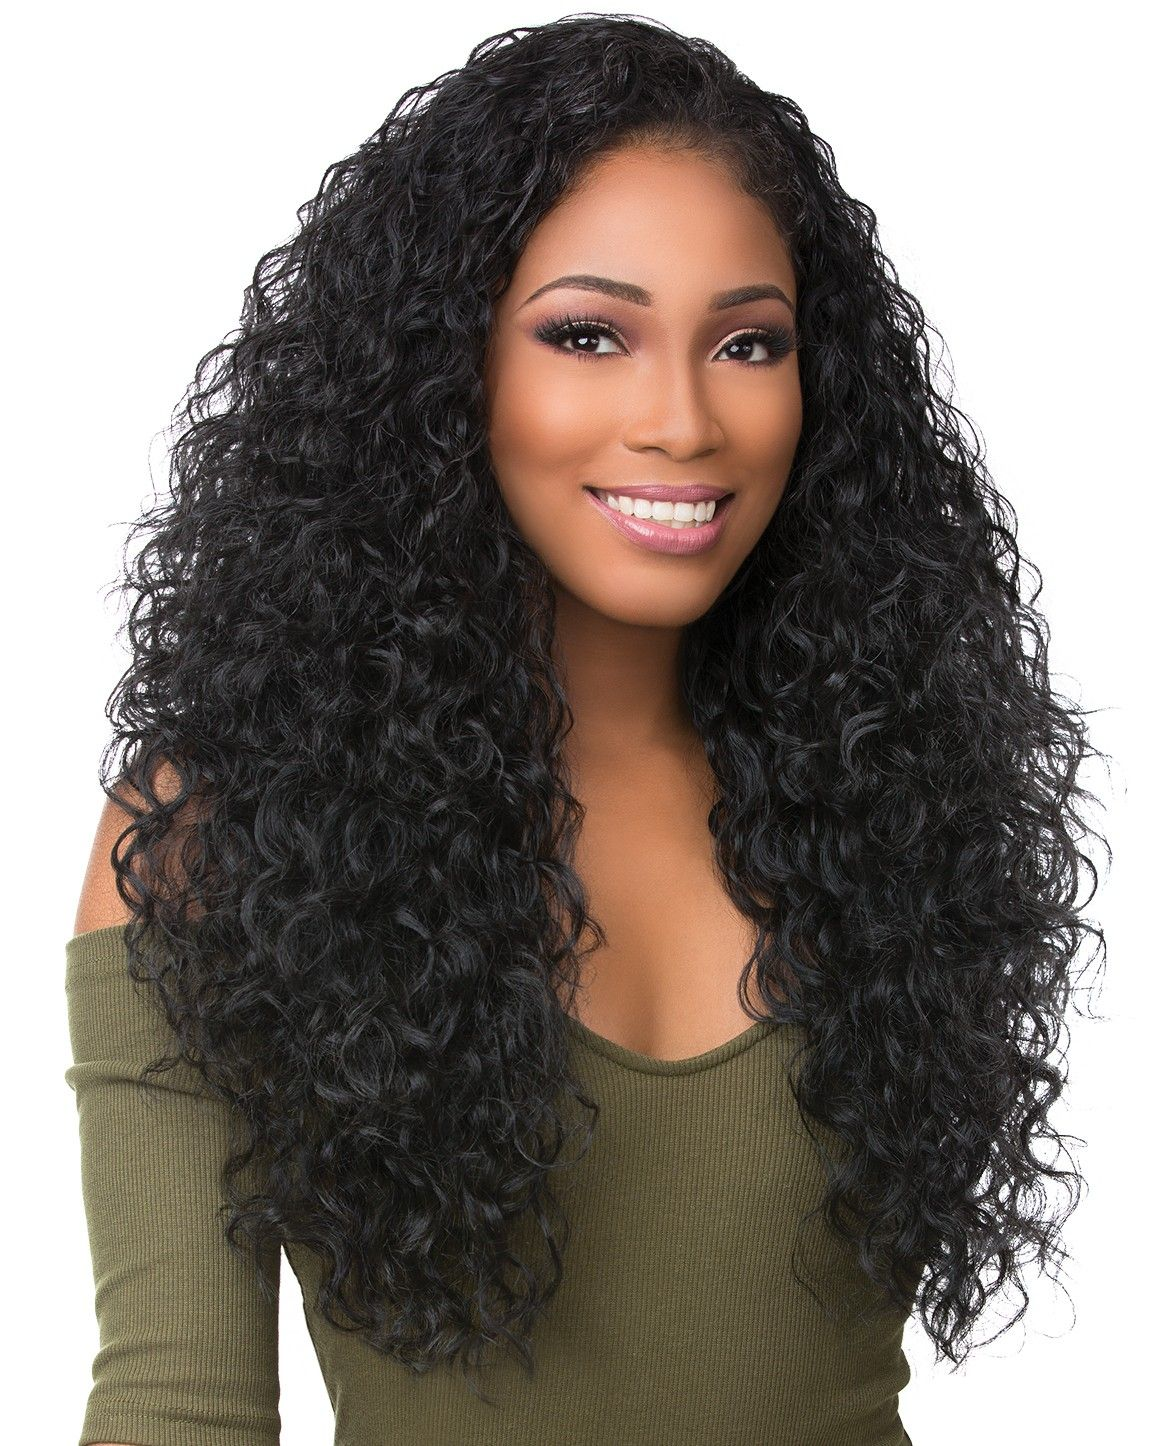 African American Hair Wigs For Girls Thick Ponytail Extensions Deep Wave Sew In With Closure 360 Lace Frontal Short Wigs Lace Front Hair Frontal Hair Piece